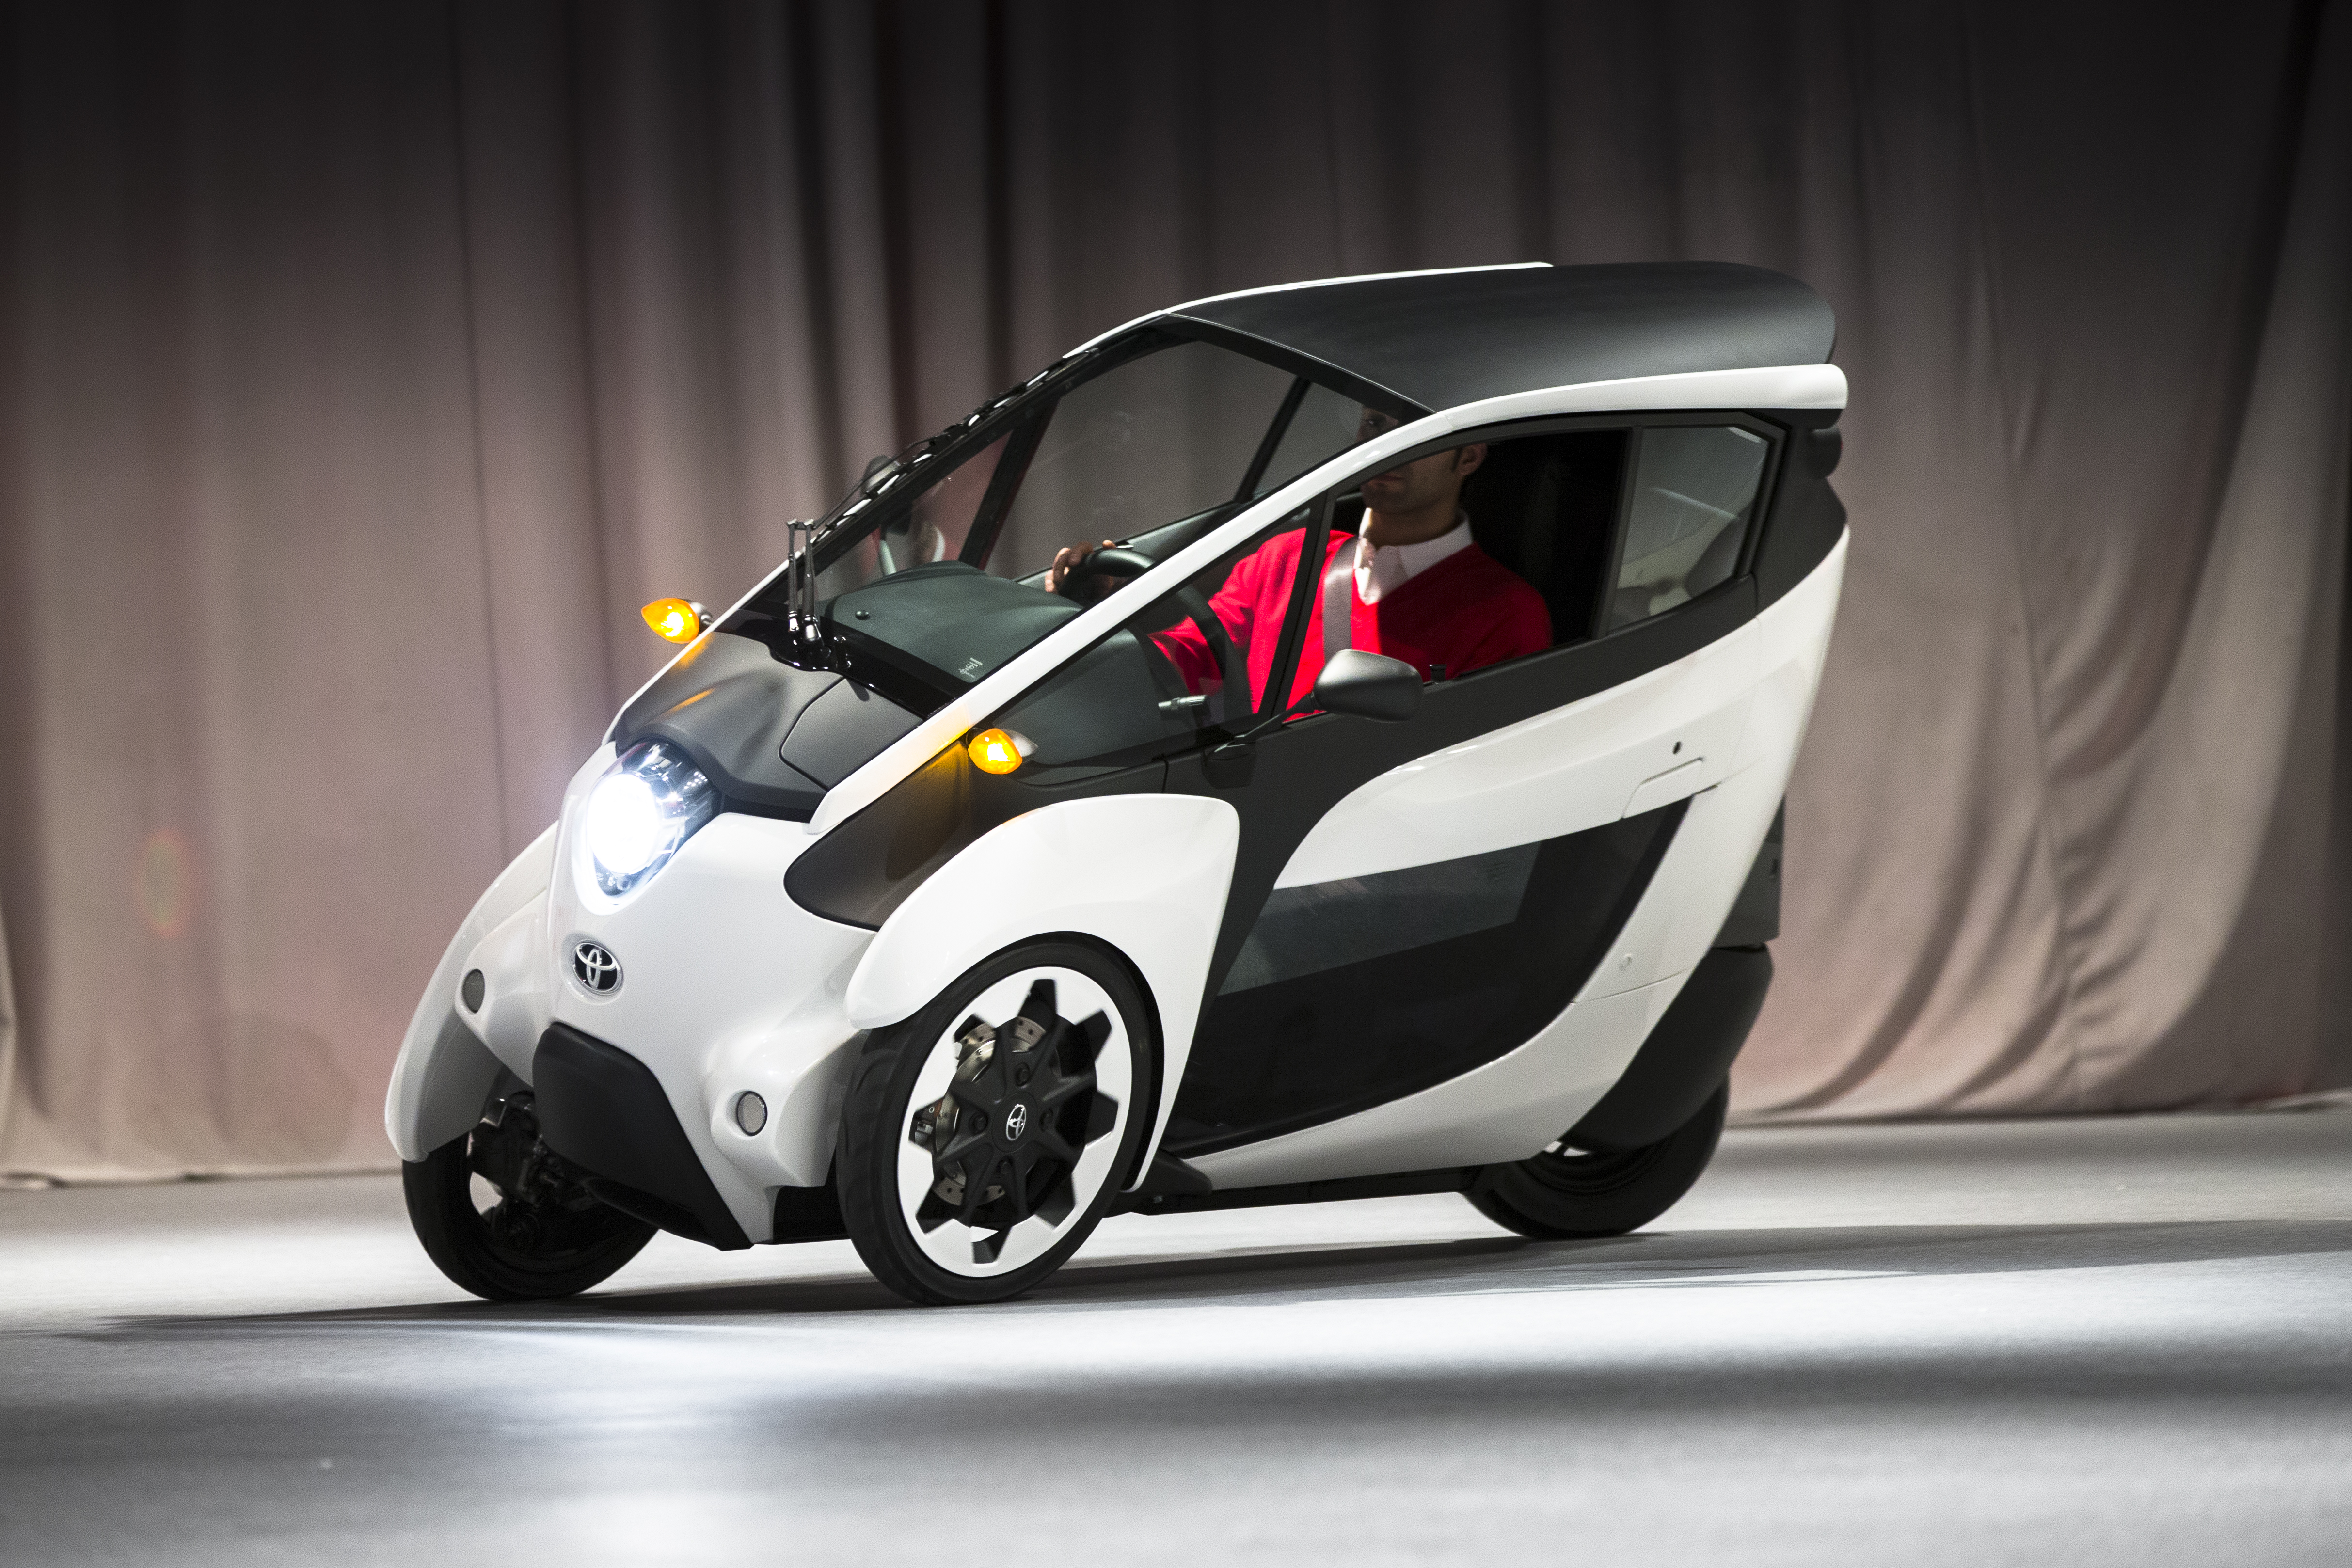 Toyota Canada Build And Price >> TOYOTA CANADA: Toyota i-Road concept vehicle bridges the divide between the motorcycle and the car